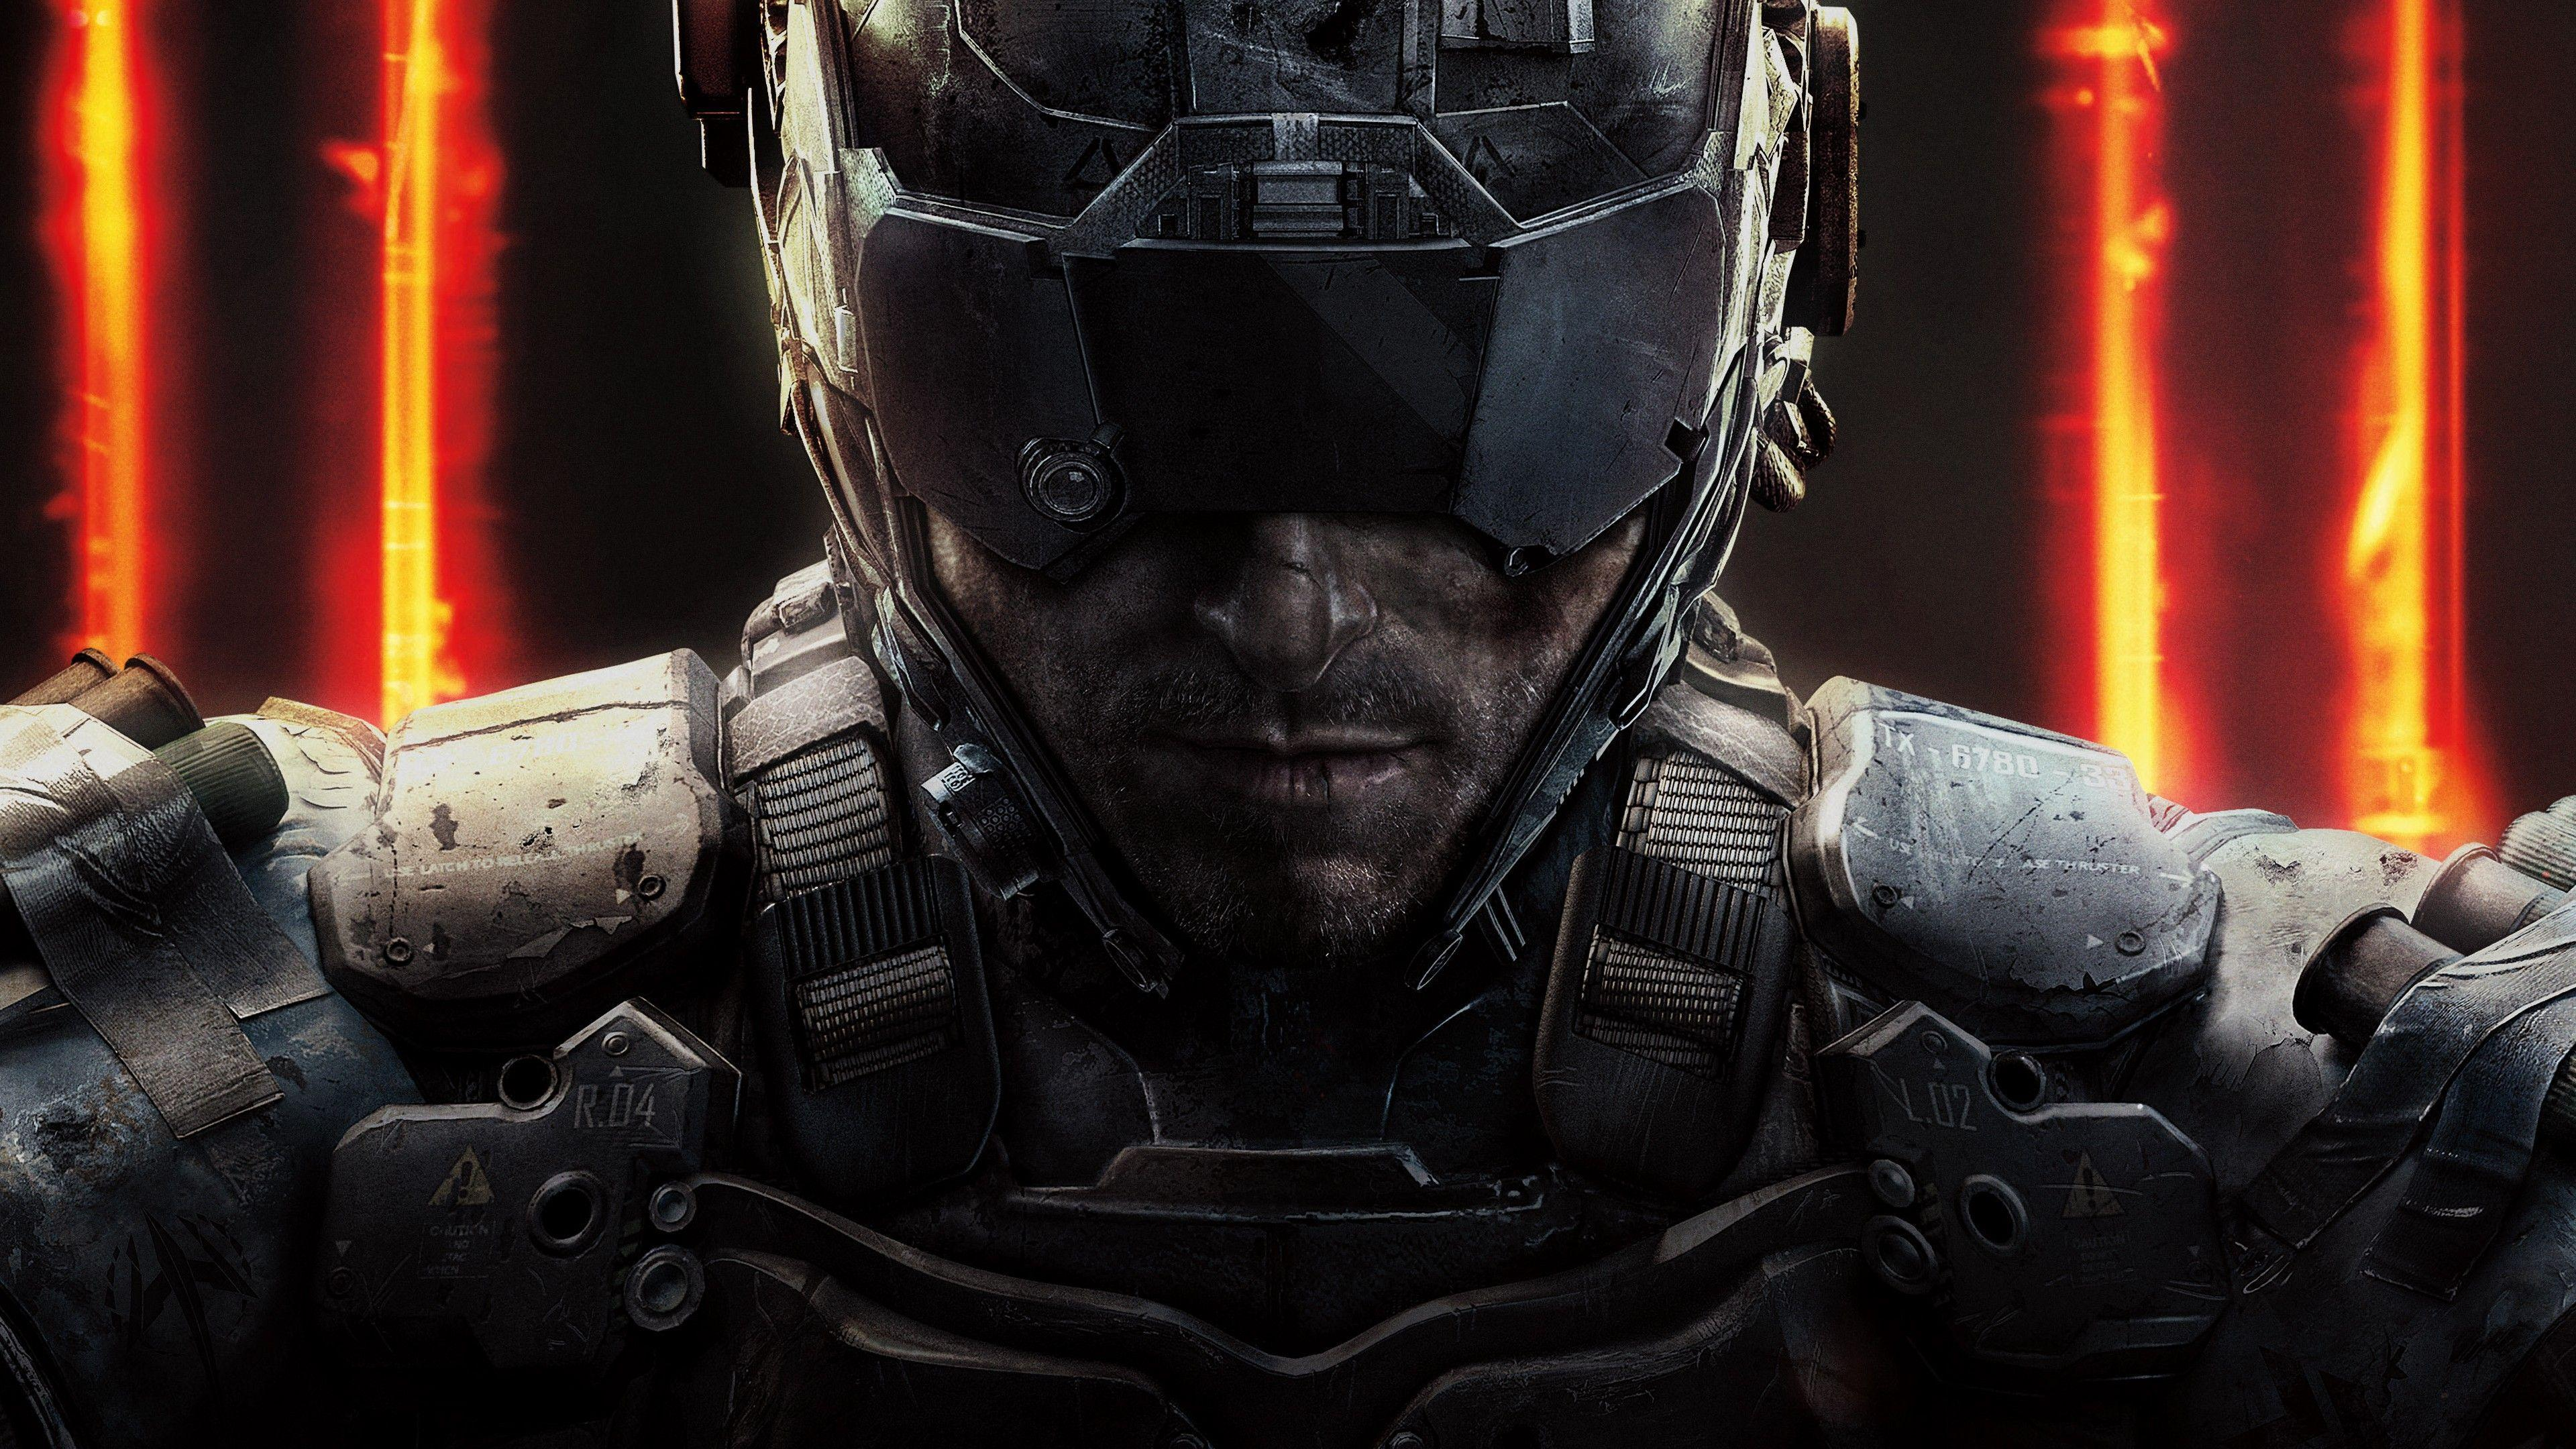 Call of Duty: Black Ops III Wallpapers